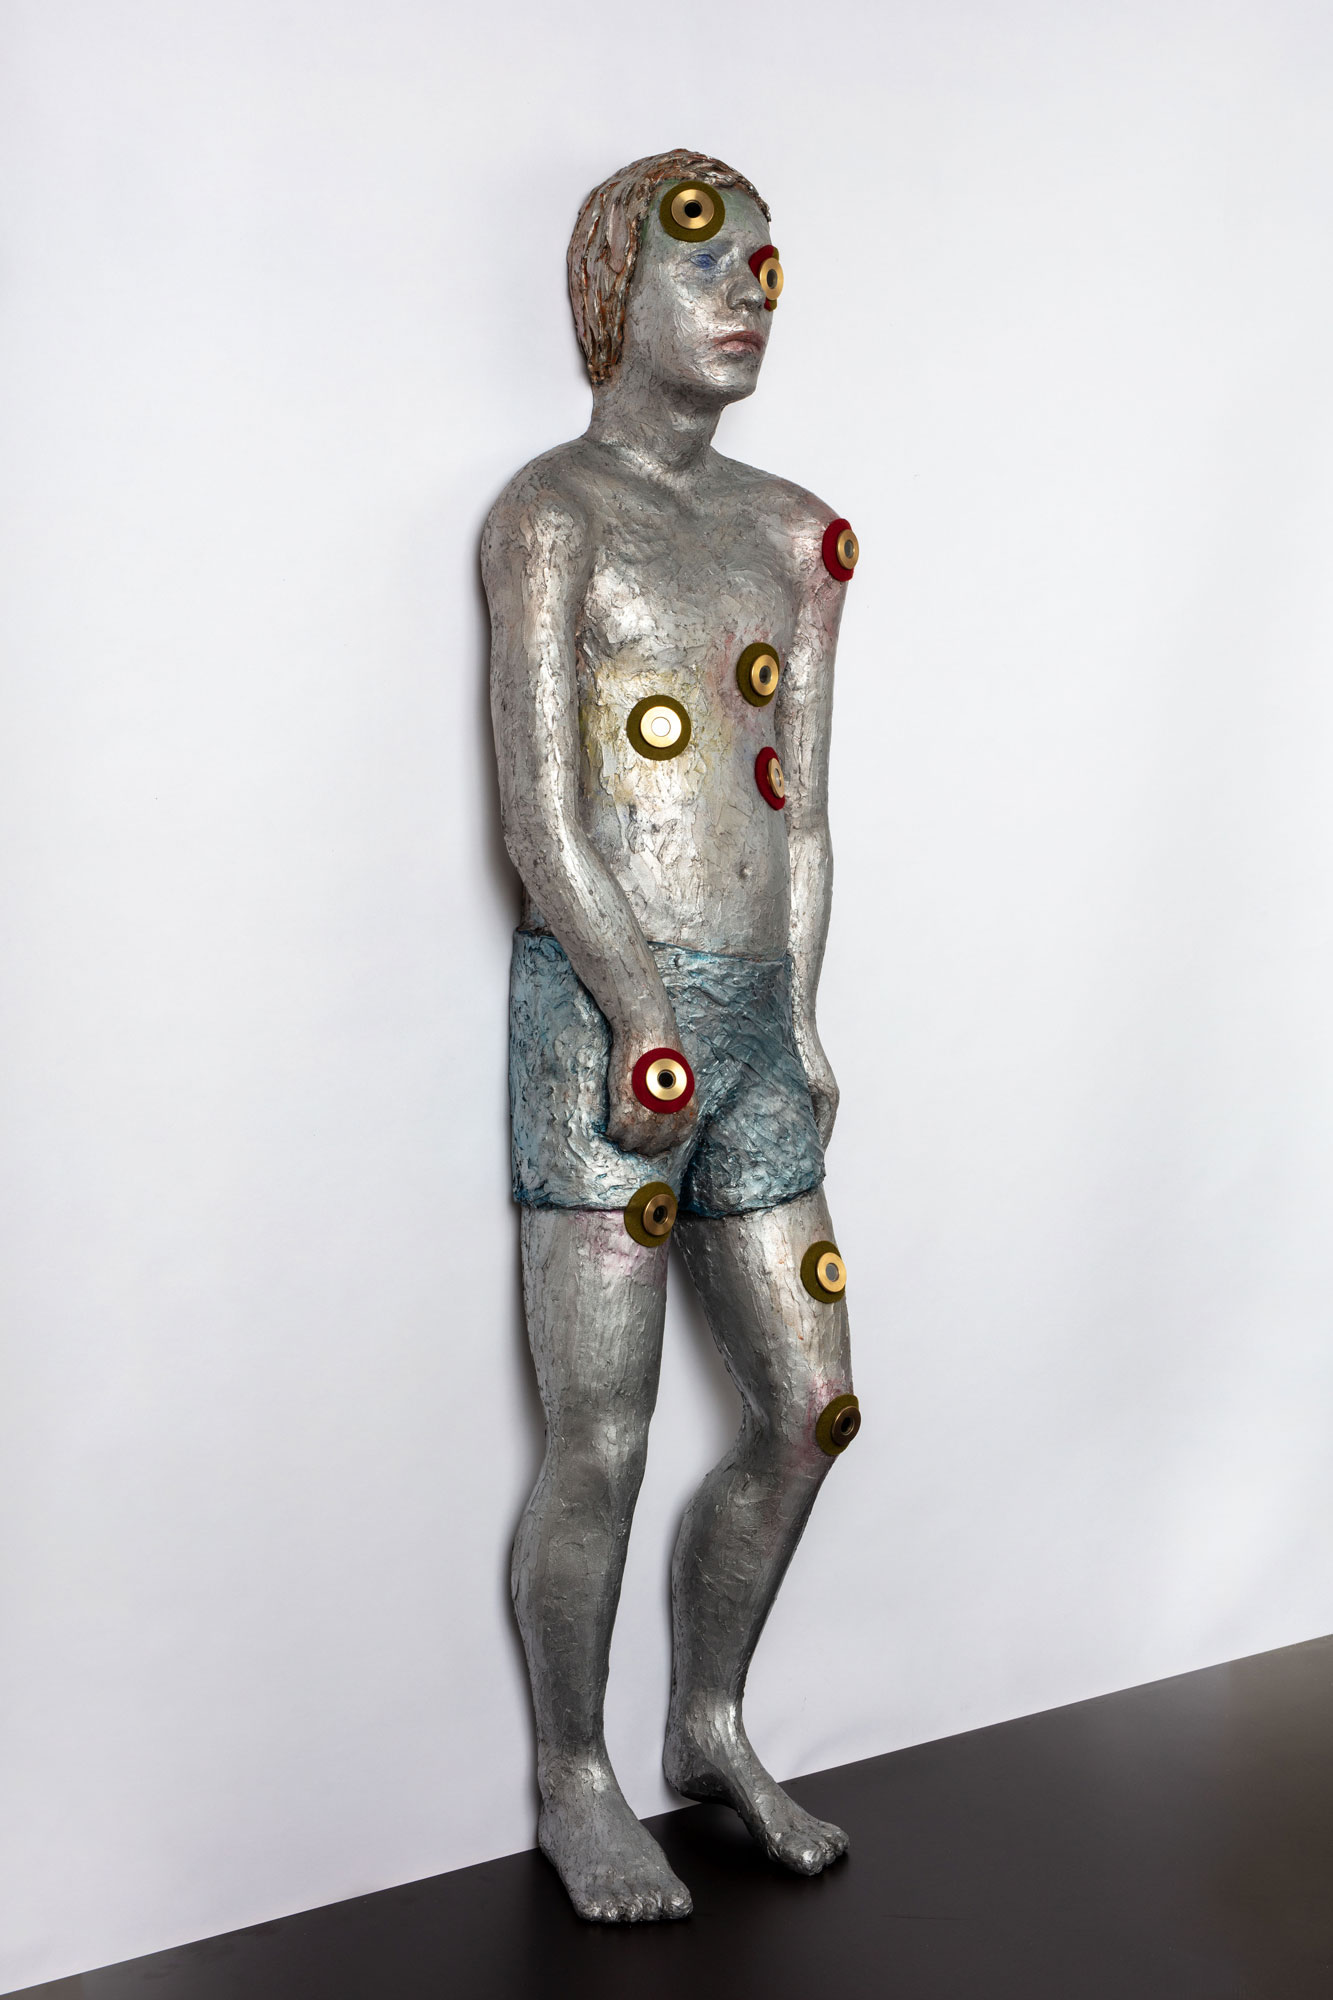 KNABE (BOY) © 2018, epoxy resin, aluminium, acrylic paint, felt, brass eyepieces, slides, LED's, 150 x 40 x 25 cm, Photo by Thomas Bruns © 2018